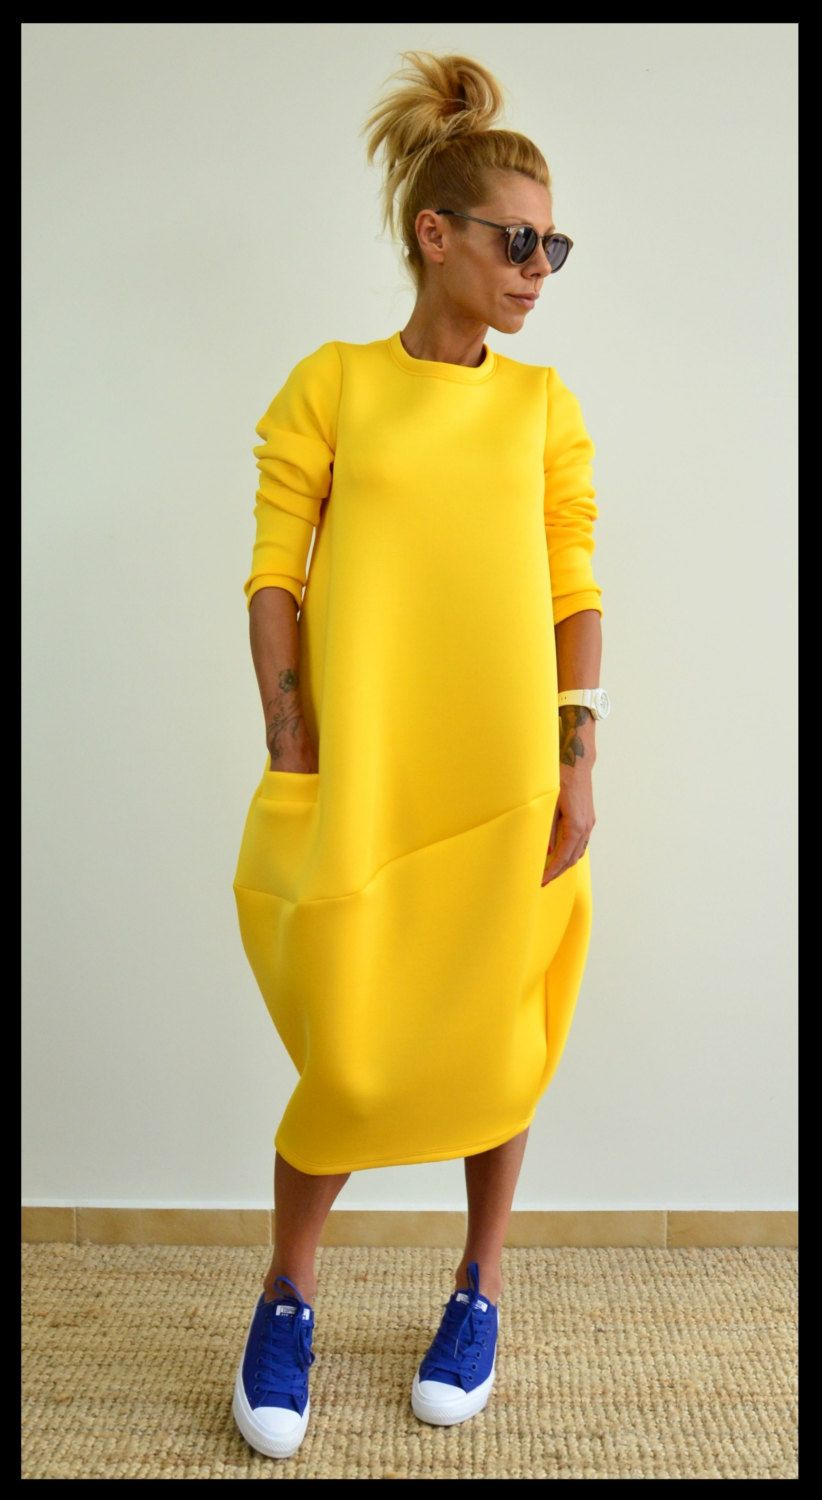 3823694bd7 Yellow loose tunic   Oversize neoprene dress   Maxi long tunic   Long  sleeves yellow top by ClothesByLockerRoom on Etsy. Excited to share the ...